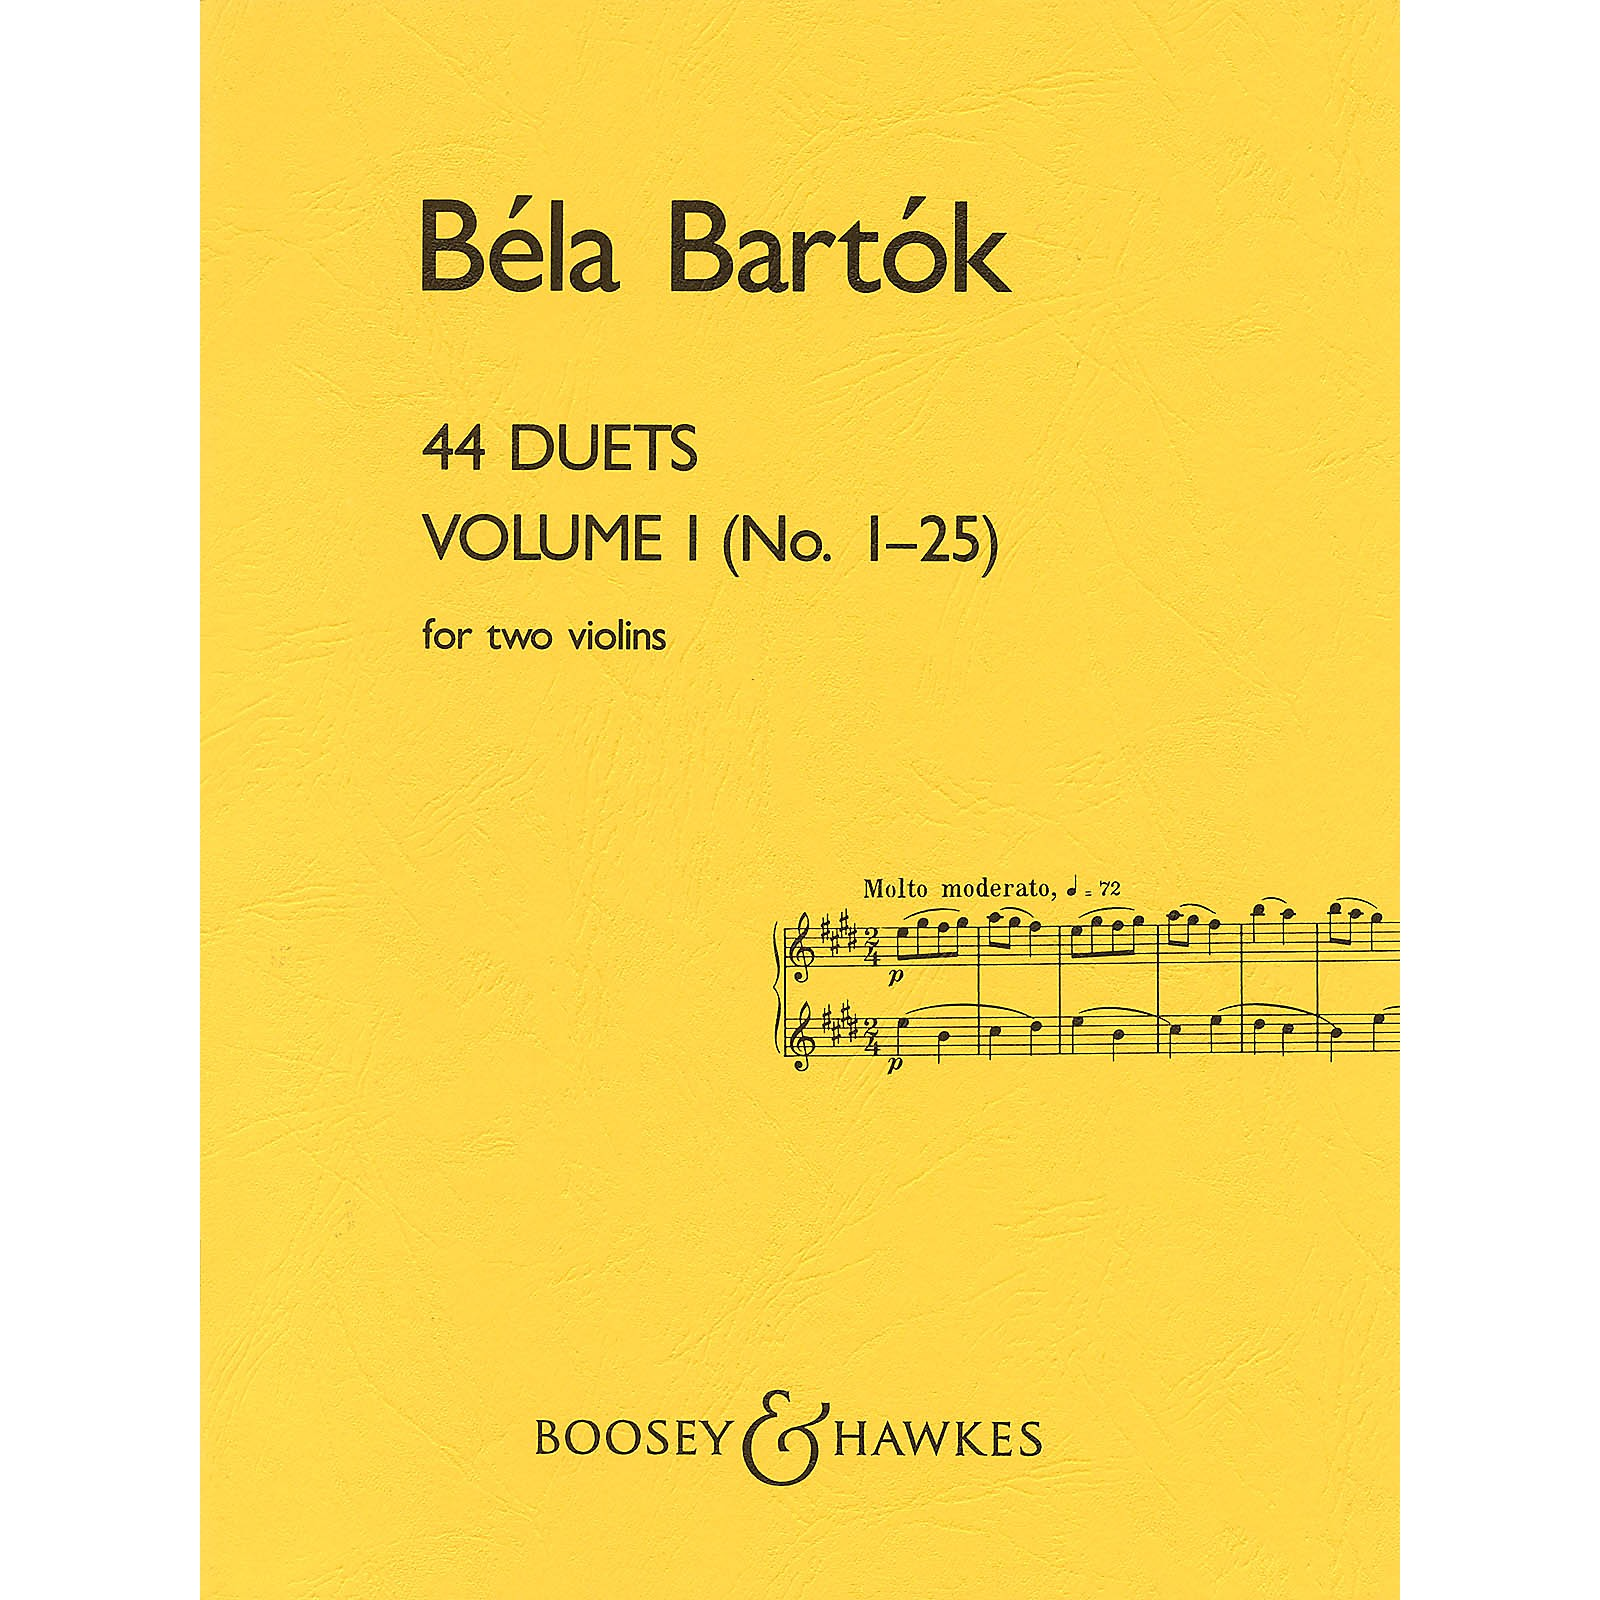 Boosey and Hawkes 44 Duets (Volume I (No. 1-25)) Boosey & Hawkes Chamber Music Series